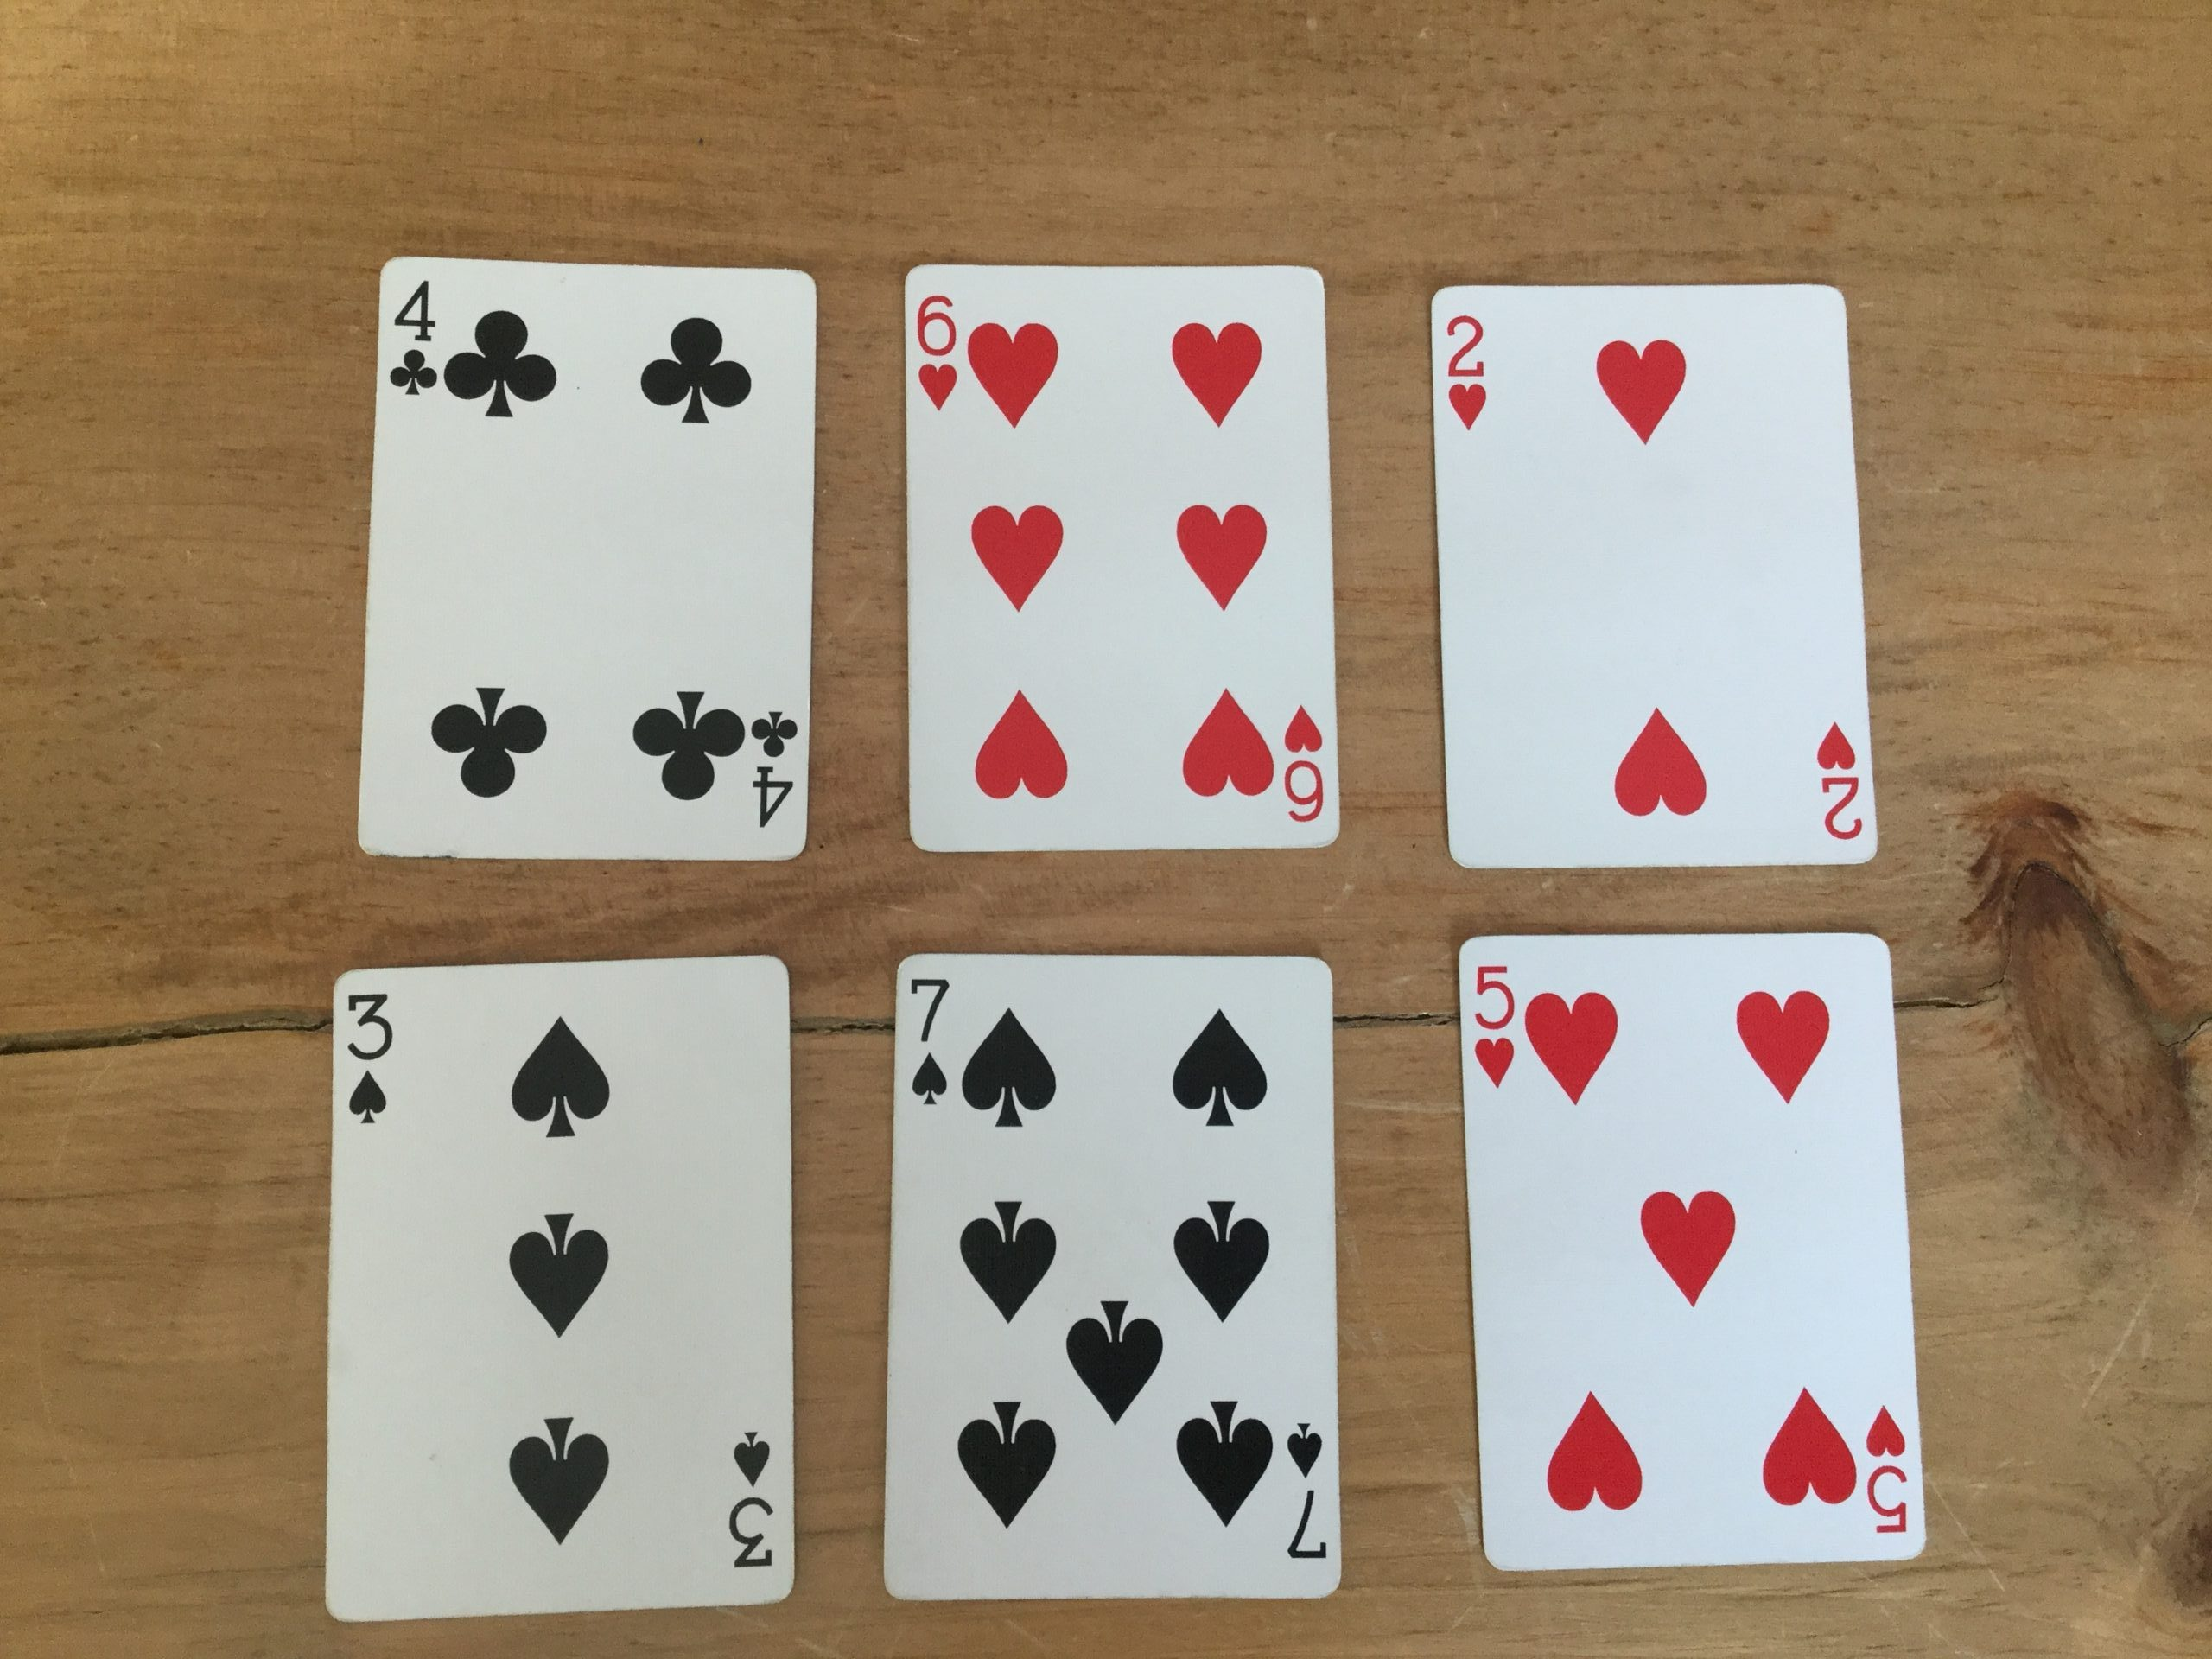 Adding and subtracting within 20 using a deck of cards